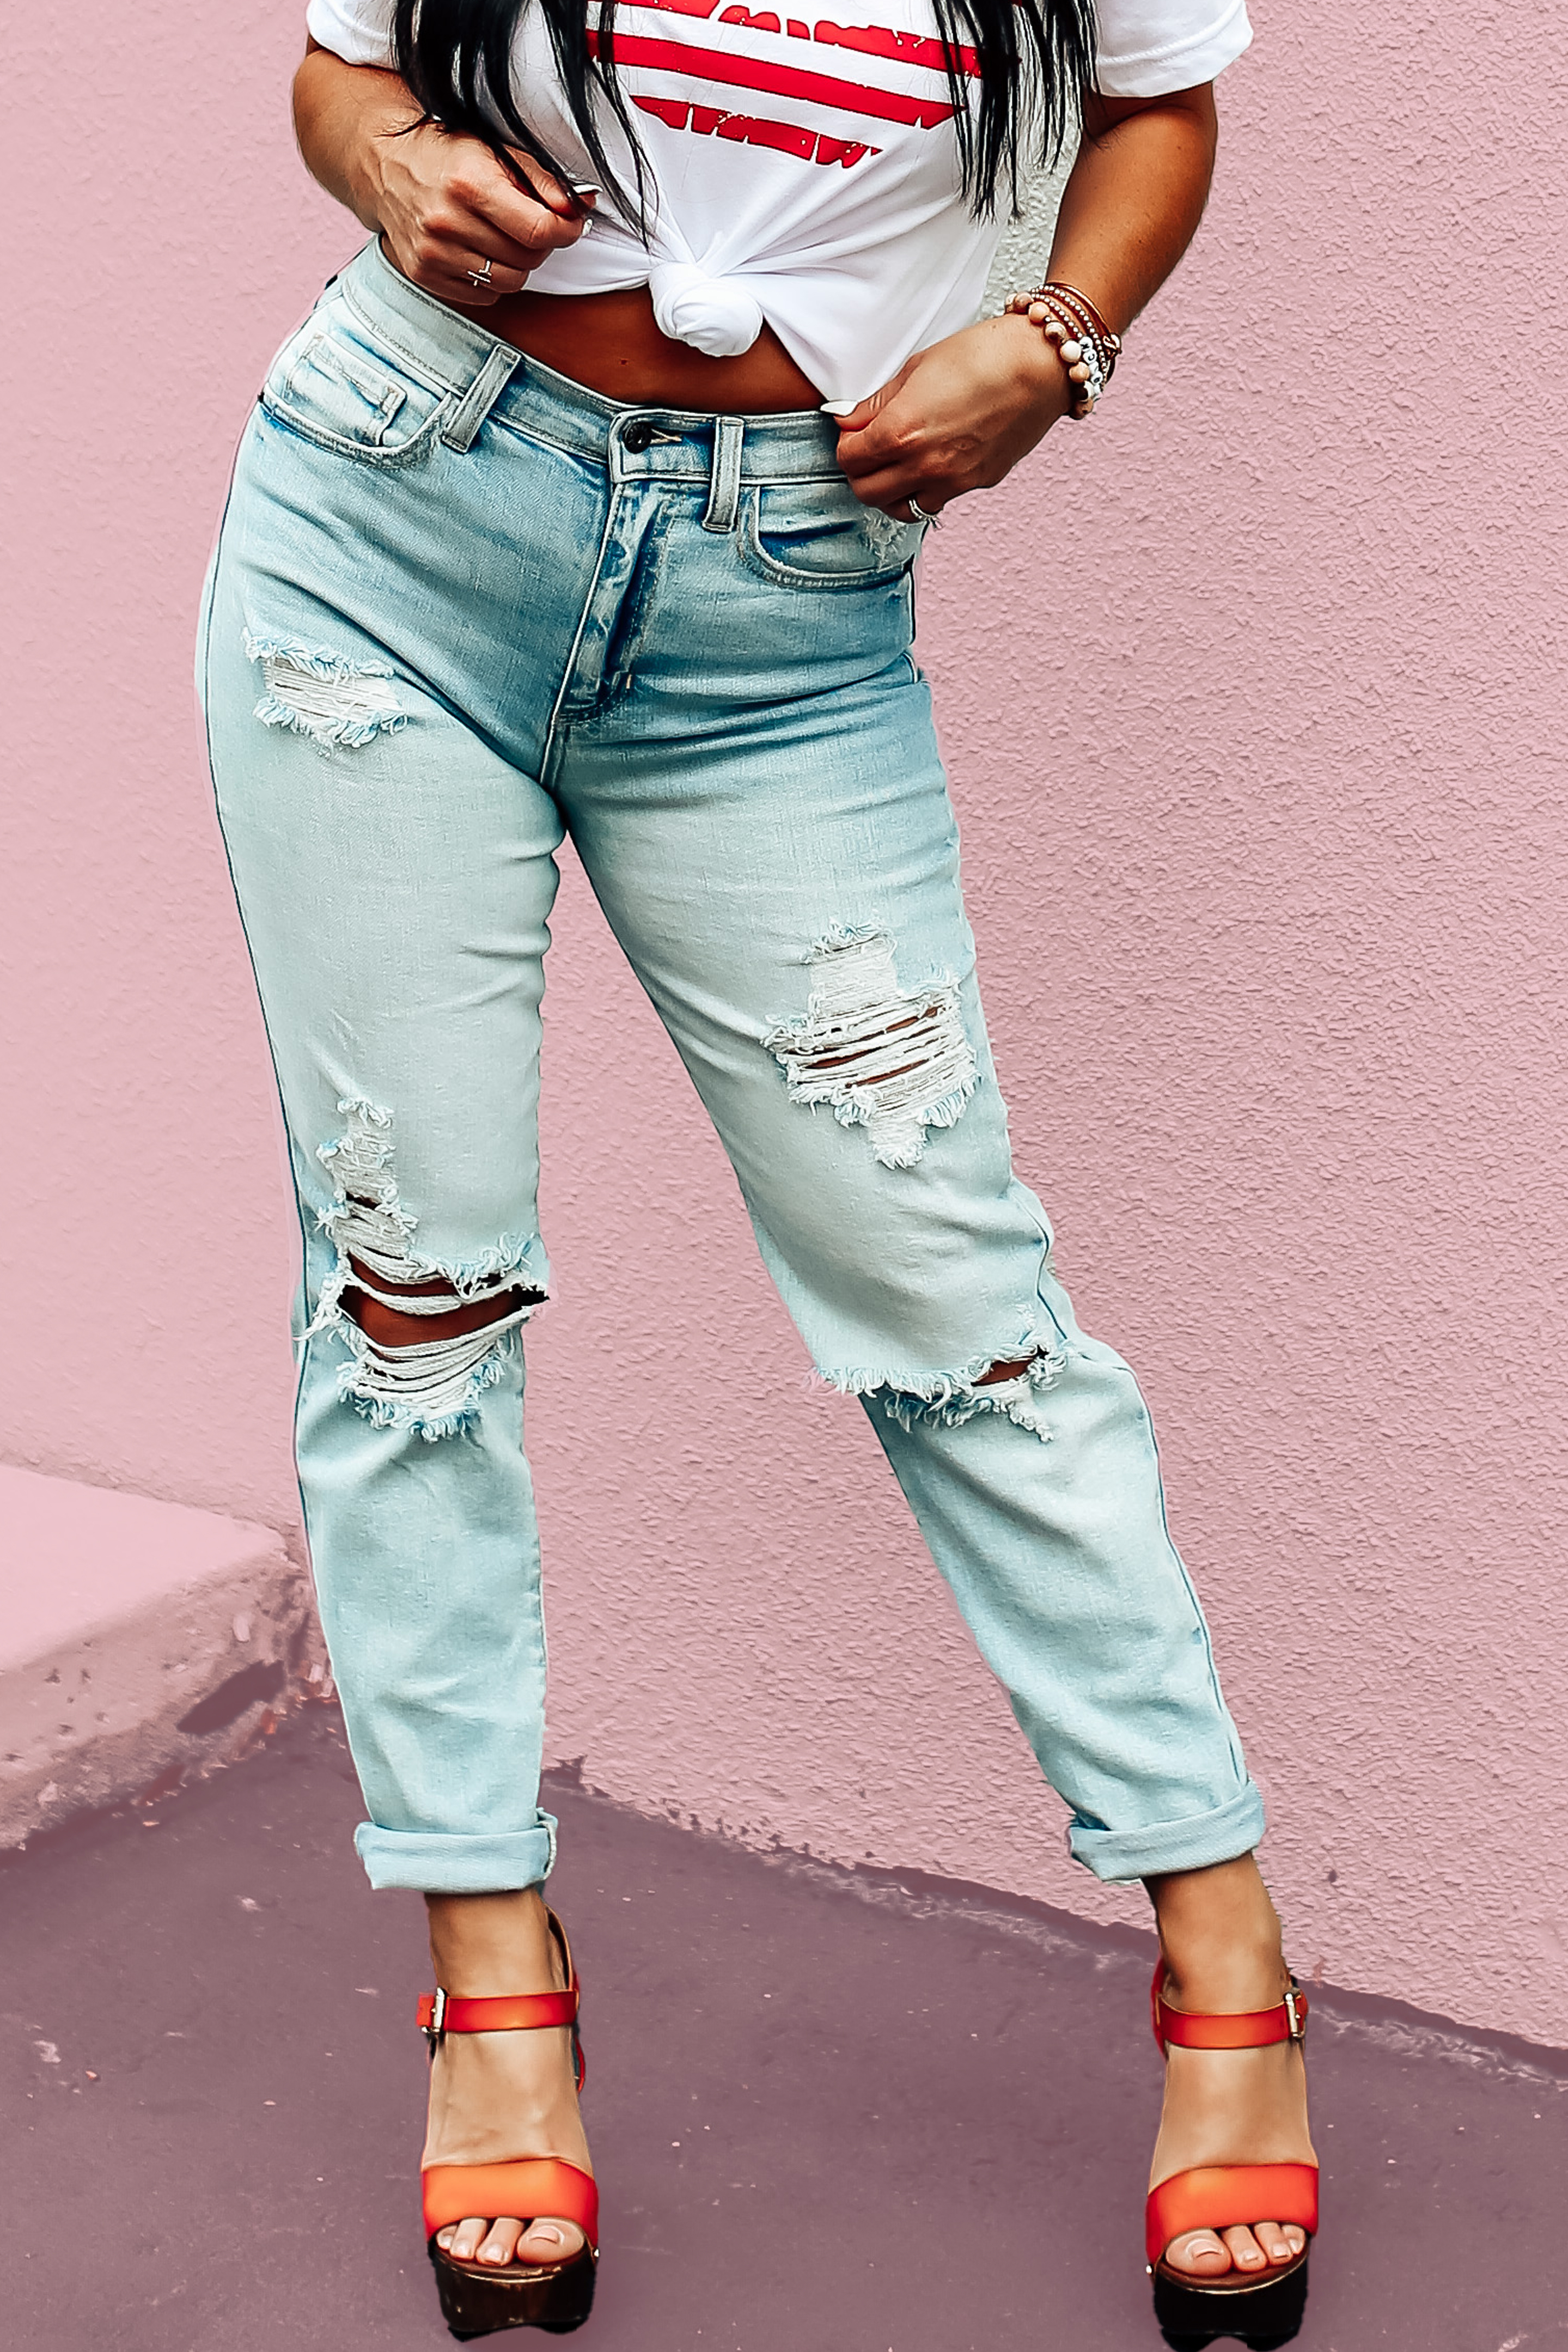 """PREMIUM DENIM IN A LIGHT WASH. LOTS OF DISTRESSING. LOOSE, BOYFRIEND STYLE FIT. 29 IN. INSEAM. 99% COTTON, 1% SPANDEX. AMANDA IS 5'7"""" A SIZE 2, WEARING A 26. STEPHANIE IS 5'4"""" SIZE 4 WEARING A 26."""